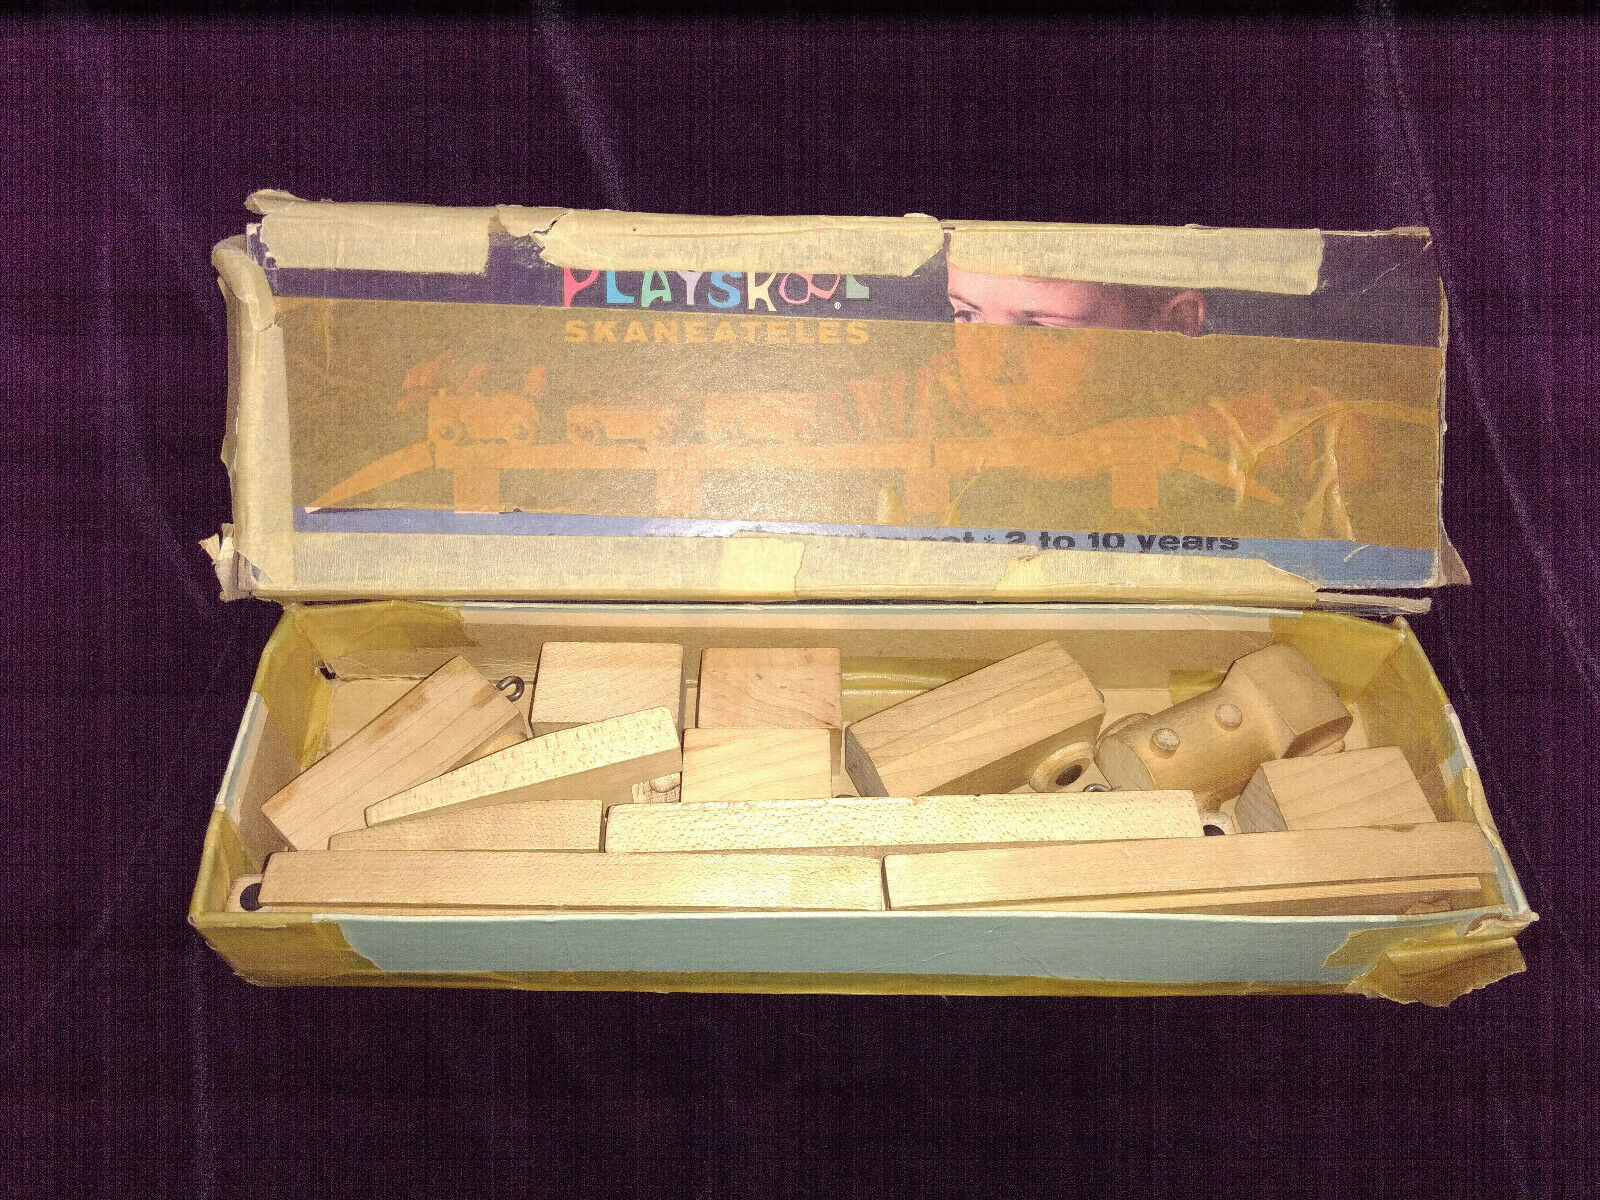 Vintage Playskool skaneateles Wooden Train Trestle Tunnel Track